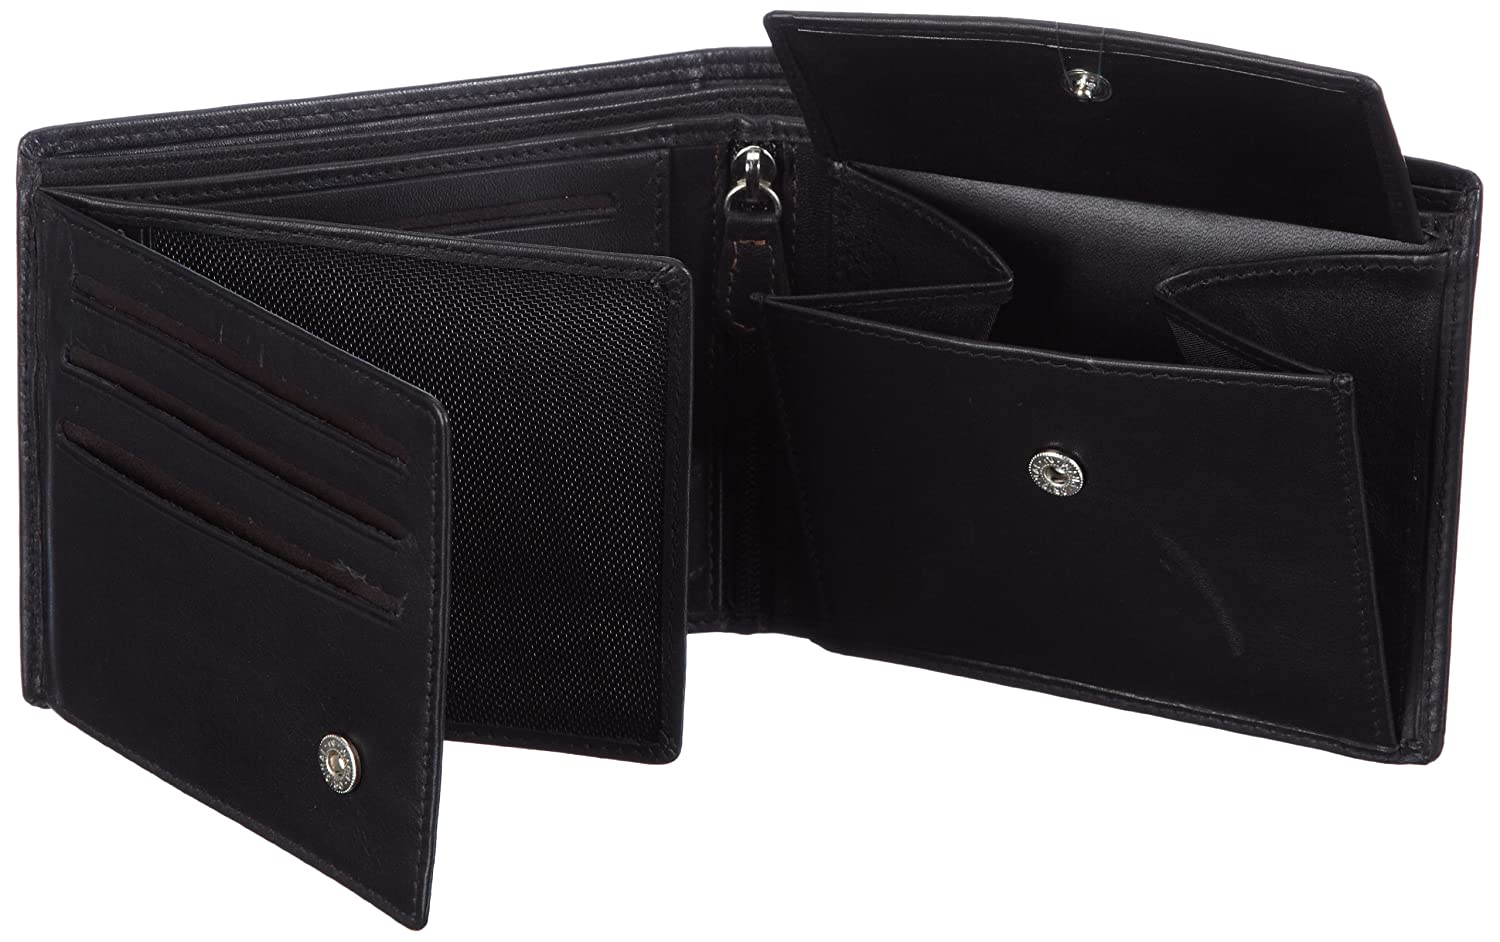 Merlin Portemonnai QF Wallets Mens M Collection Dfe3wR